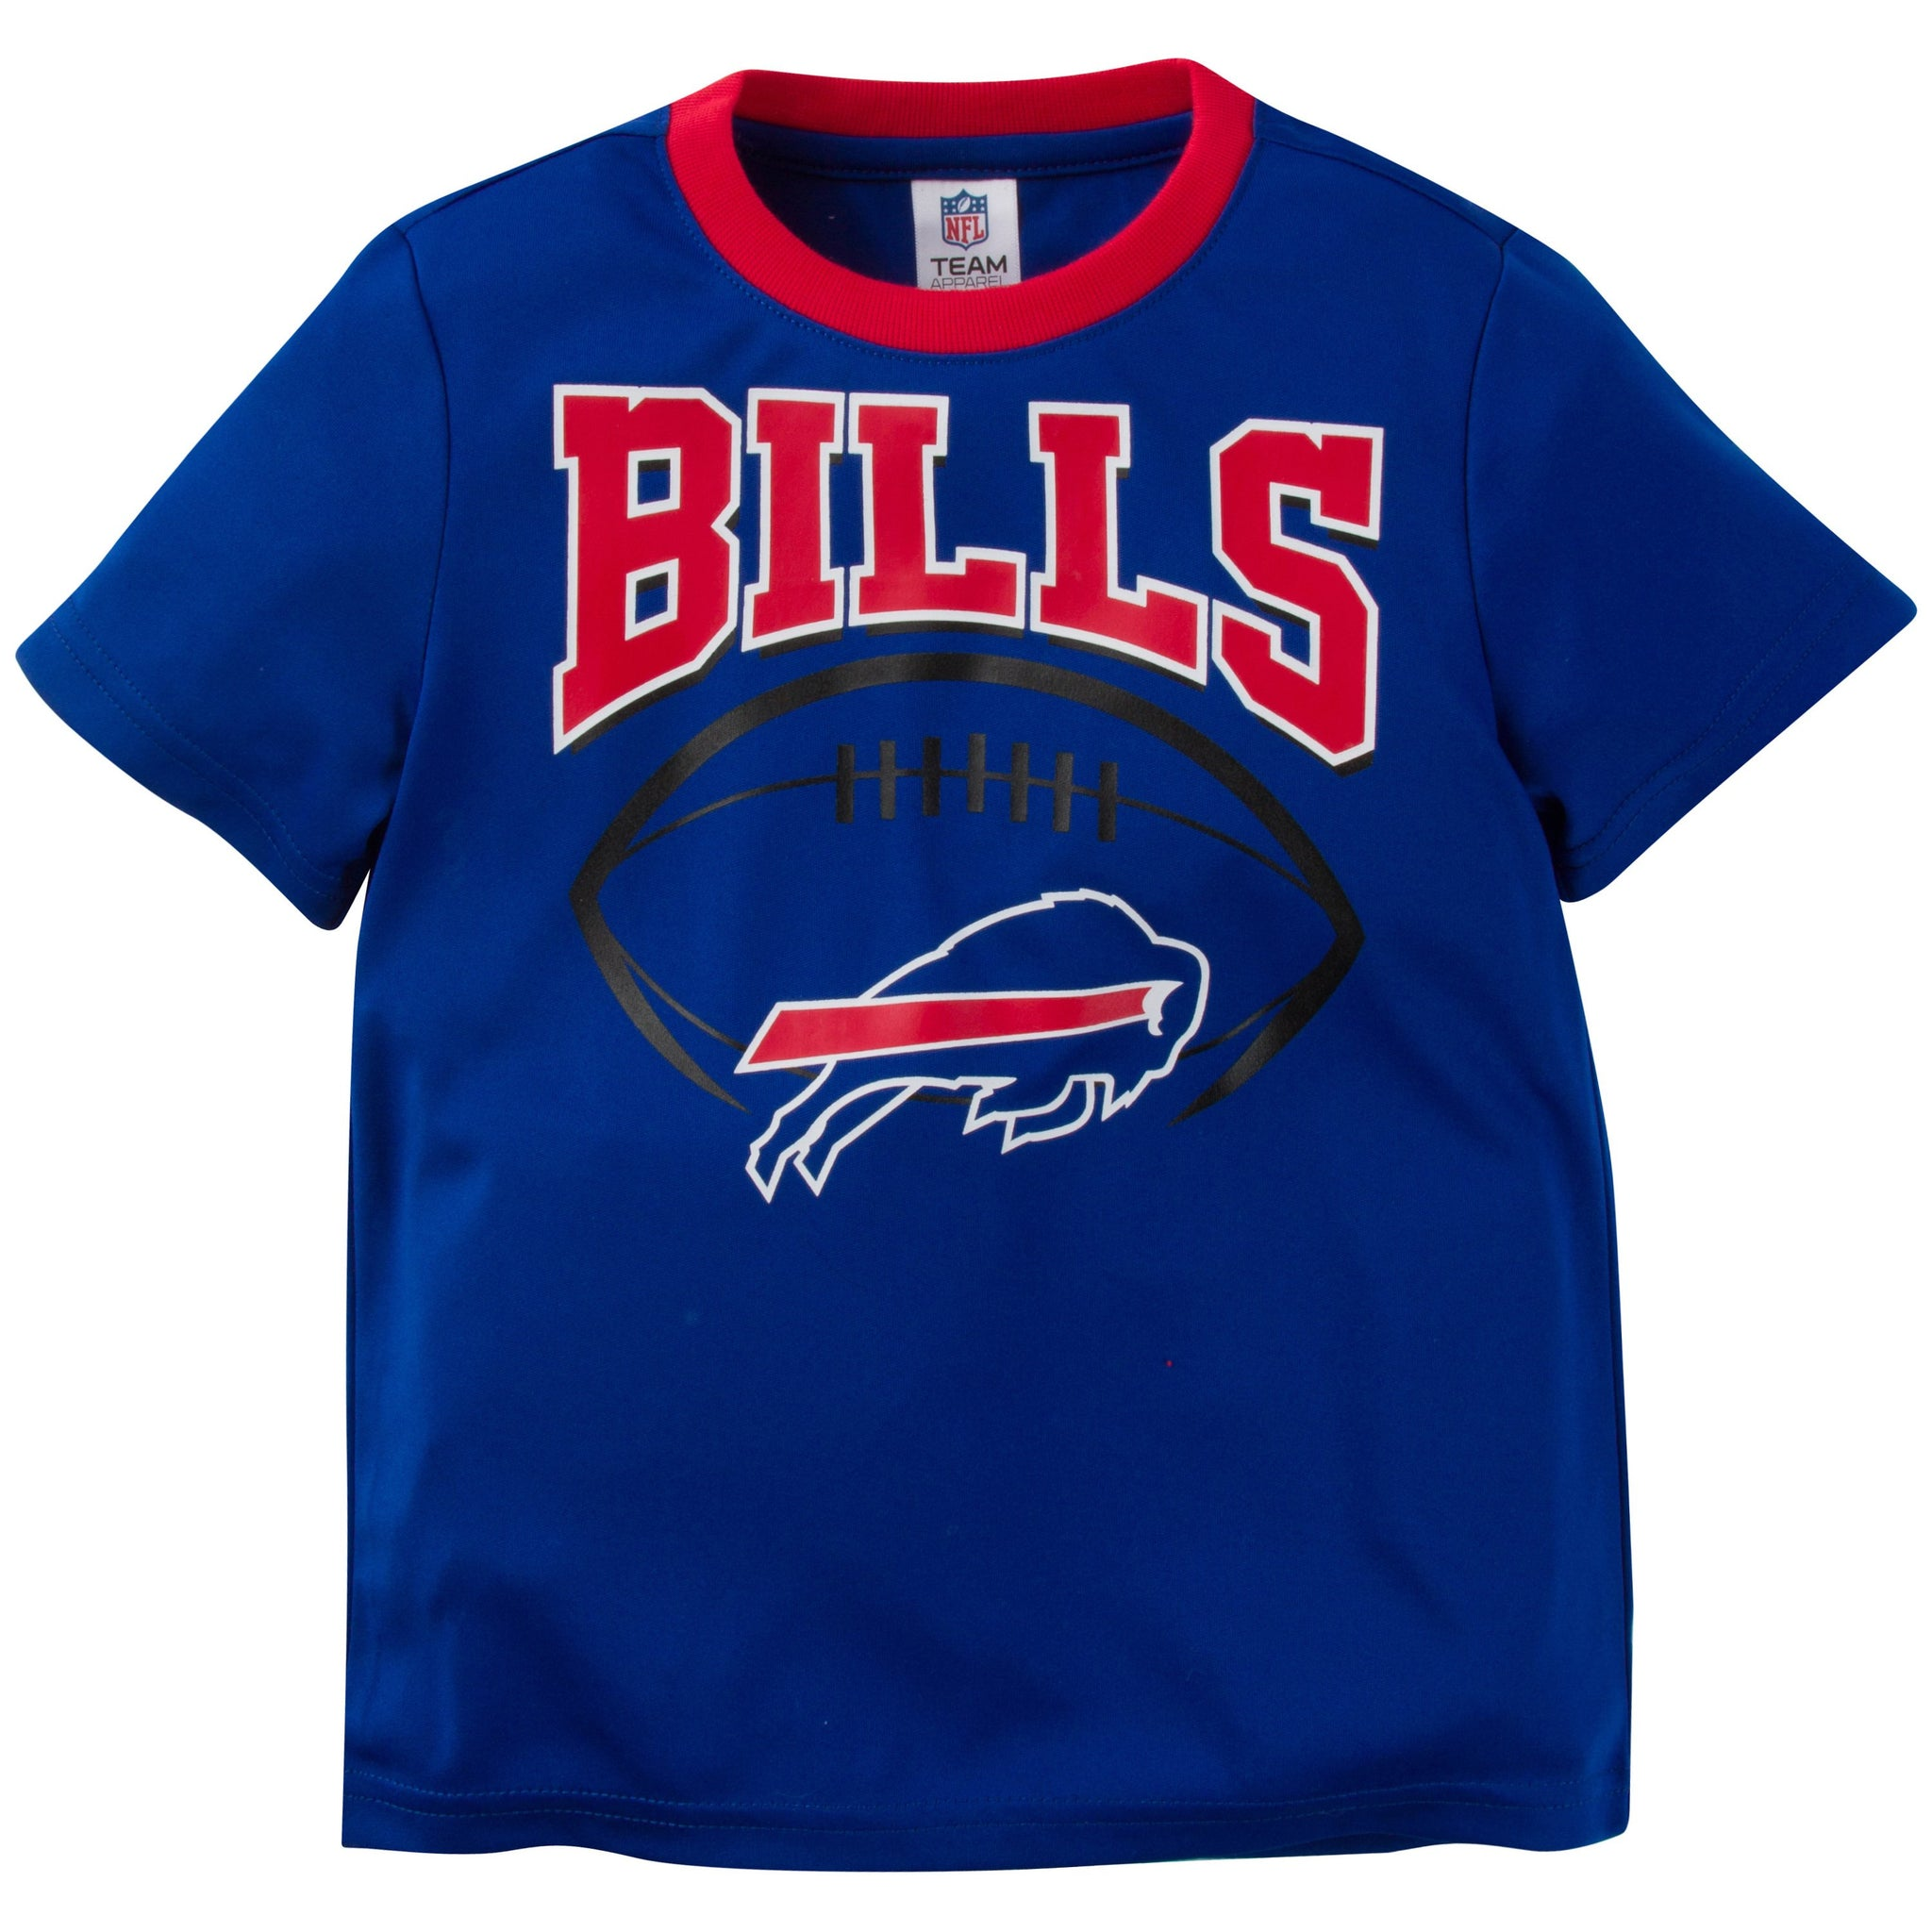 NFL Buffalo Bills Toddler Boys Short Sleeve Performance Tee Shirt-Gerber Childrenswear